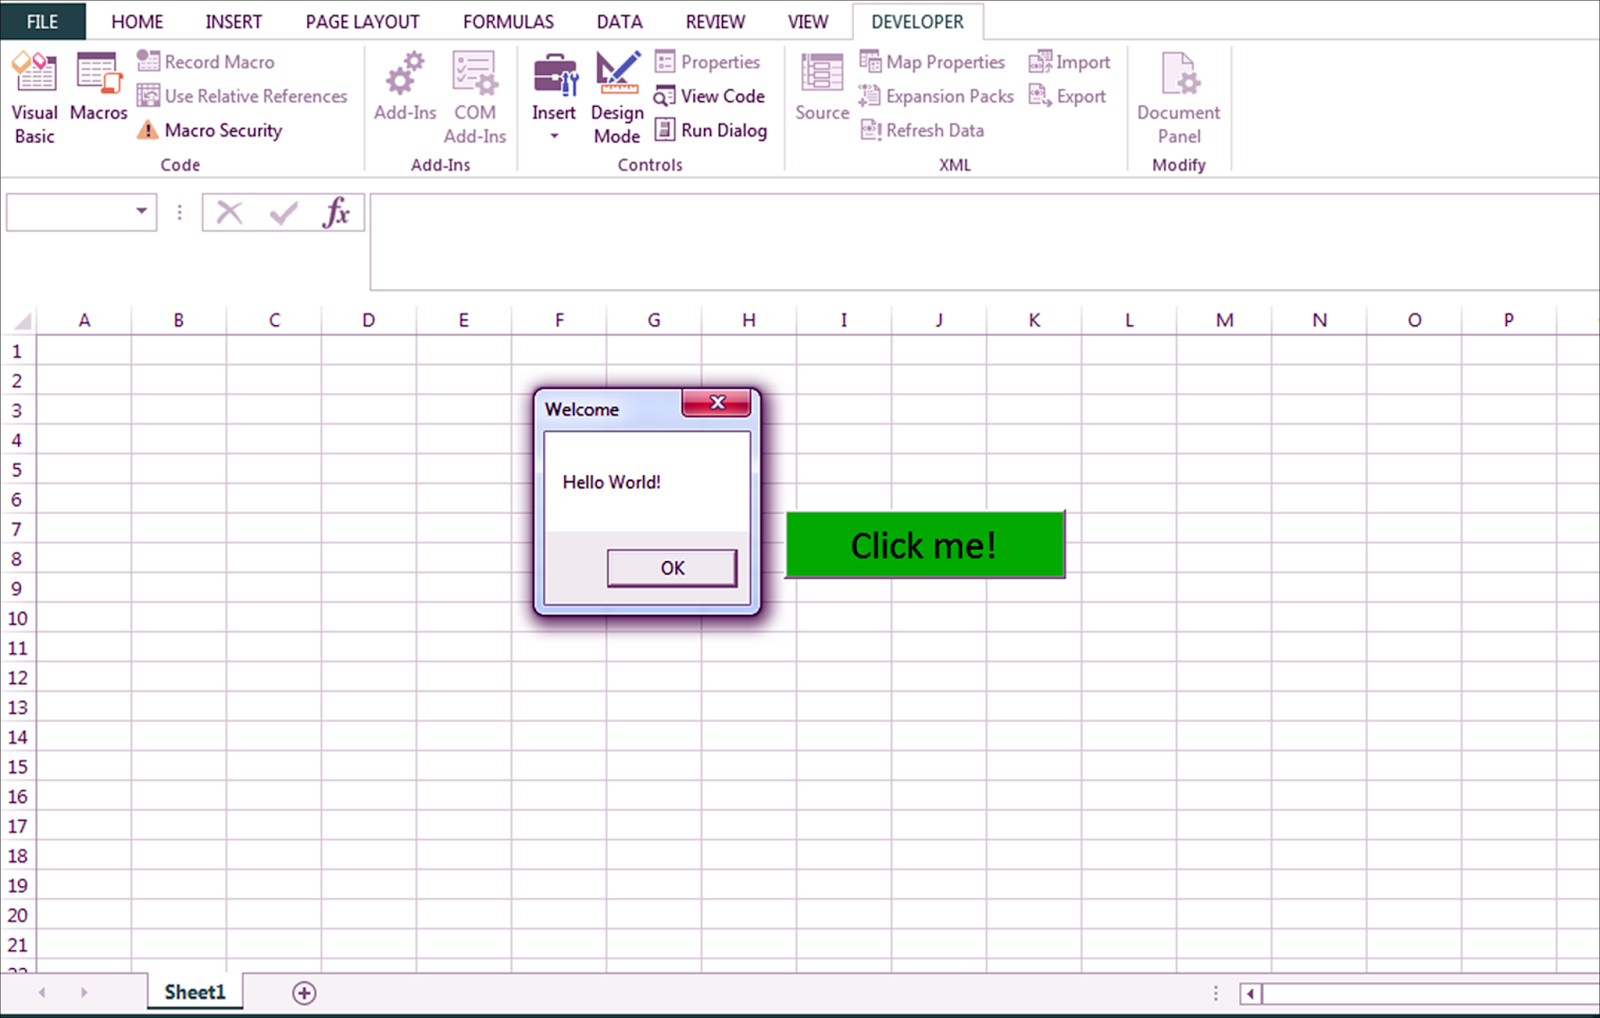 Workbooks excel macro workbooks open : How to create a message box in excel using VBA and pop up whenever ...